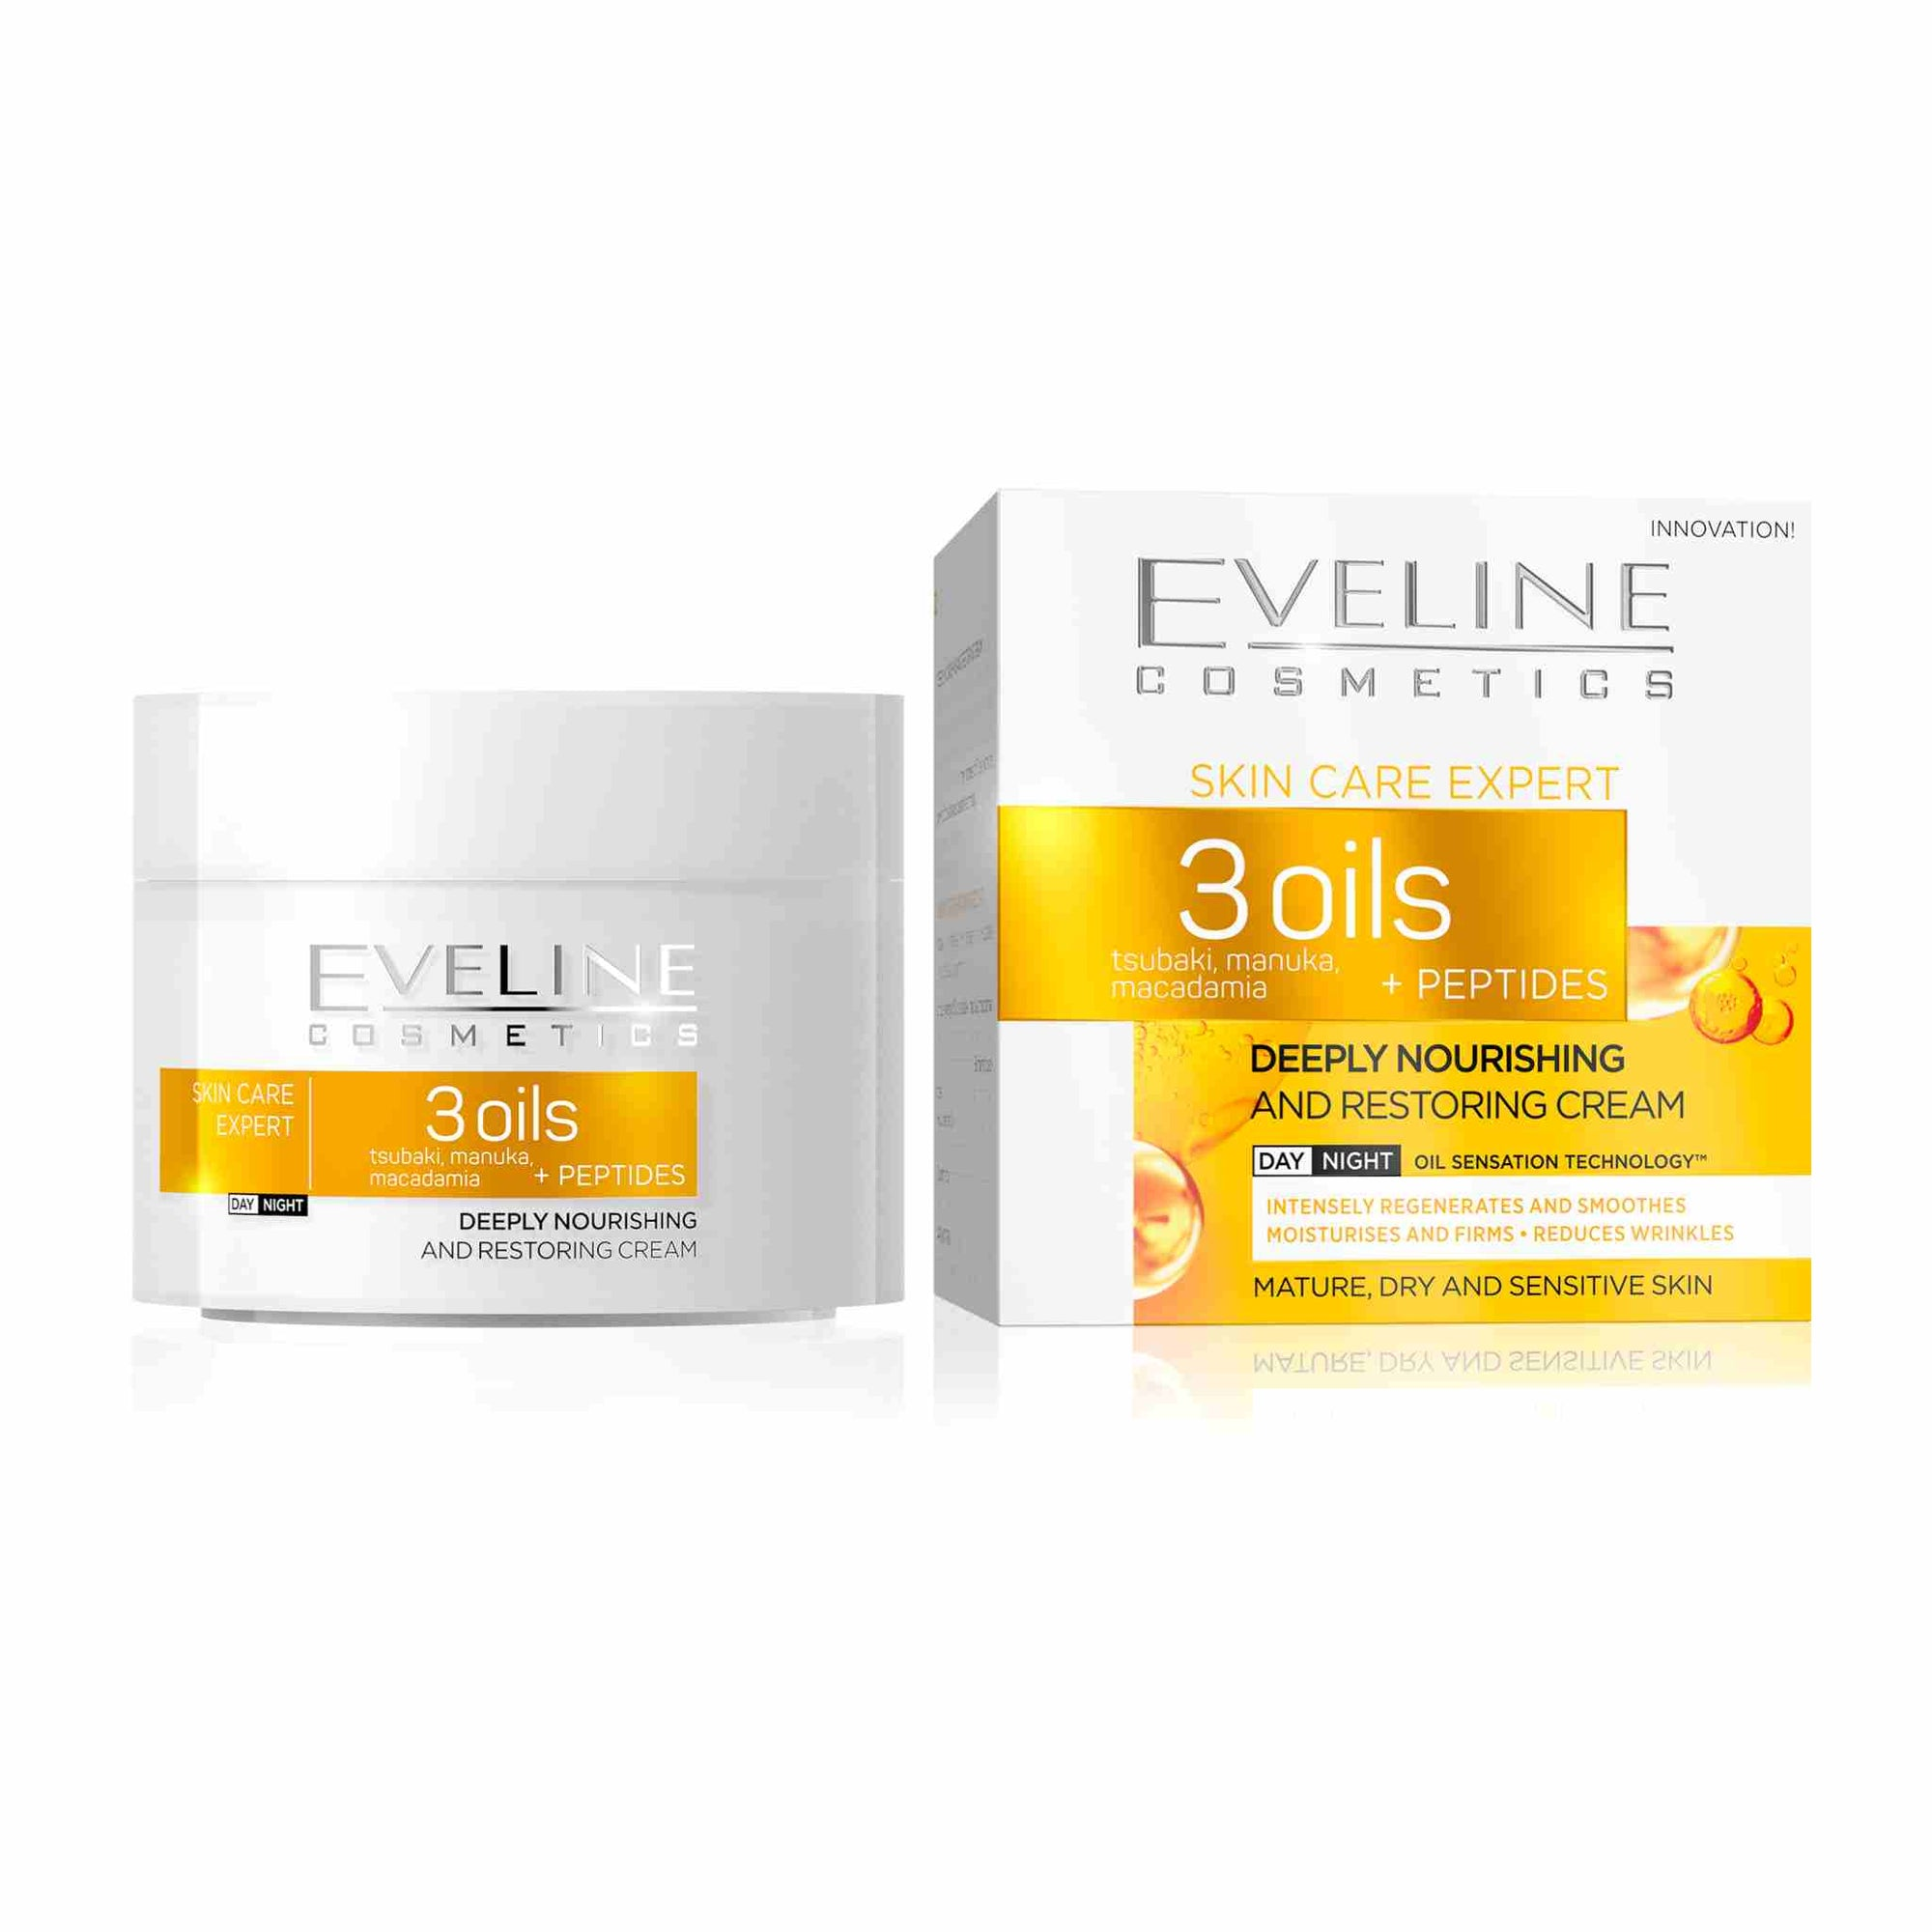 Skin Care Expert 3 Oils Deeply Nourishing and Restoring Day and Night Cream